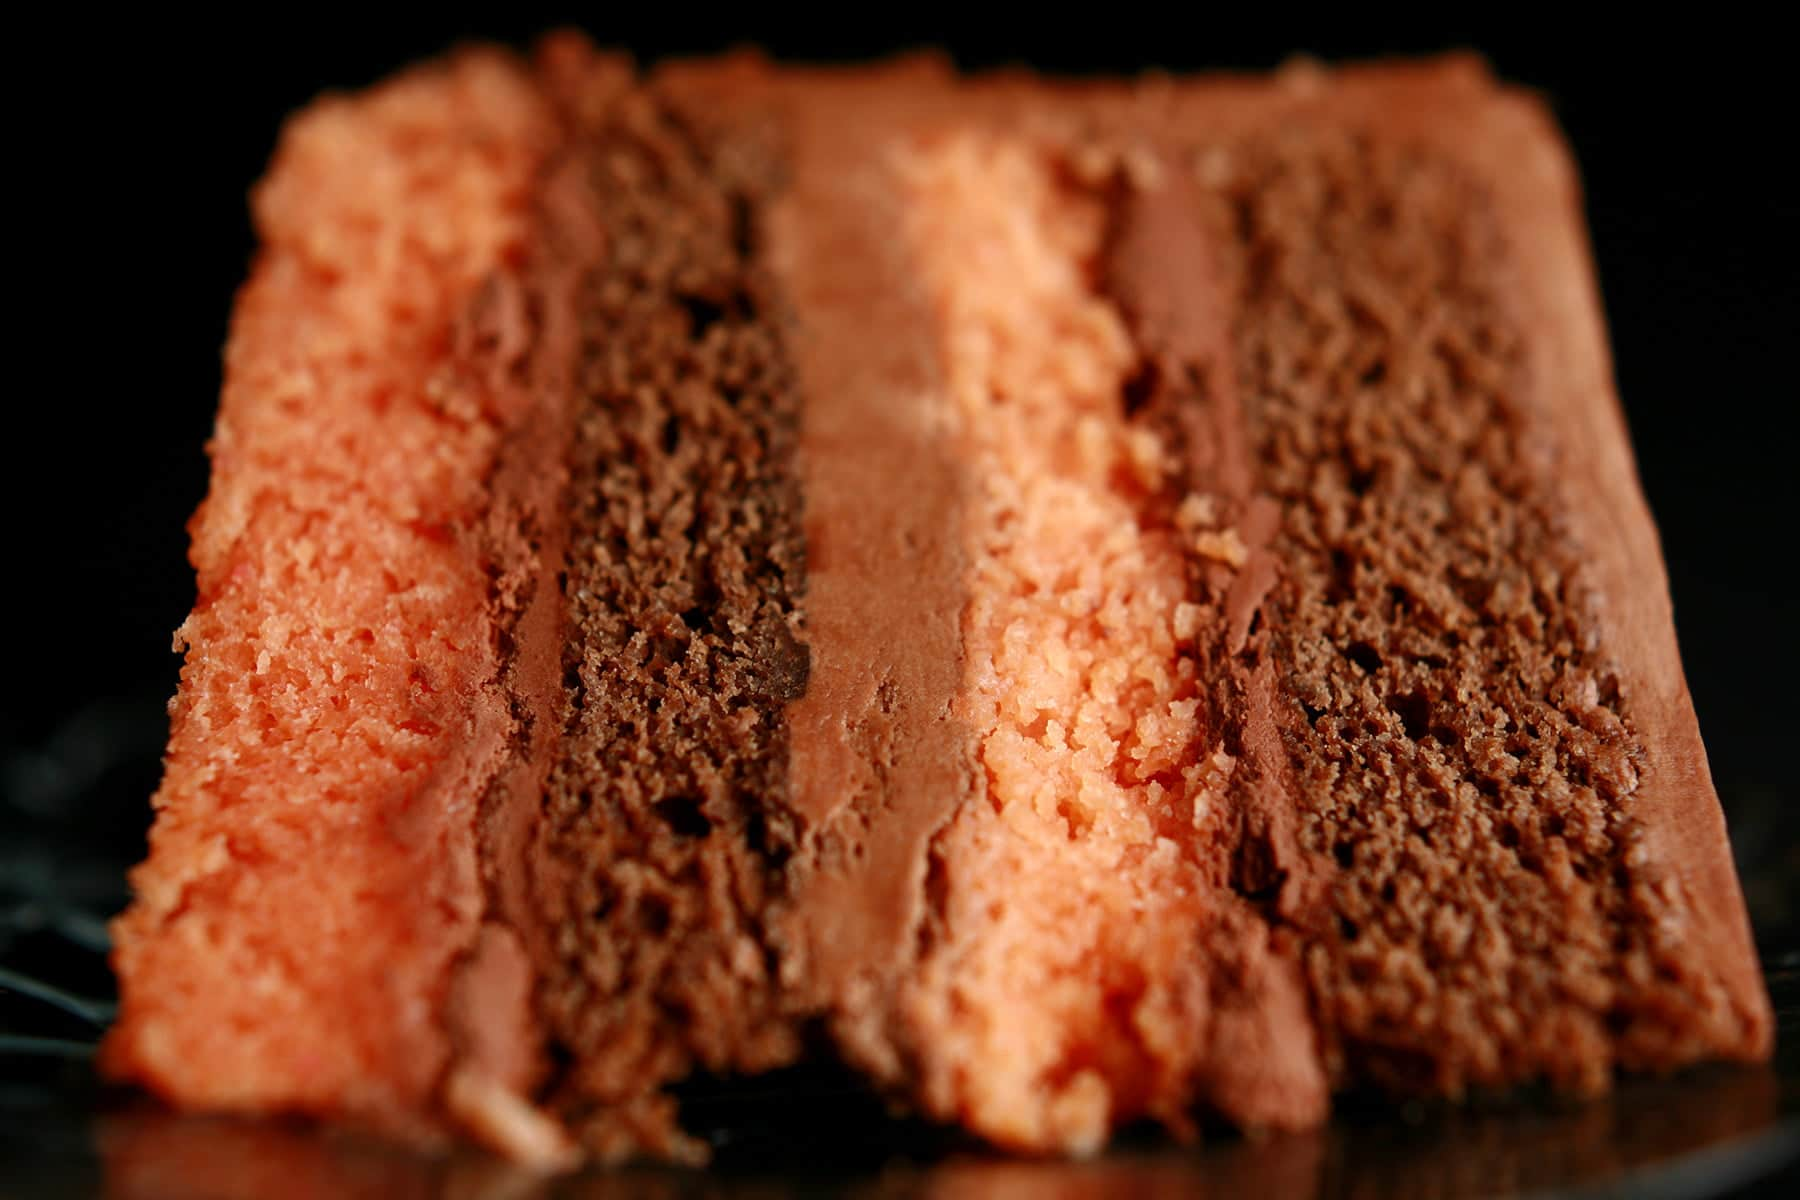 A large slice of B-52 Torte - Layers of mocha and orange cakes, separated by layers of blood orange ganache and Irish Cream buttercream.